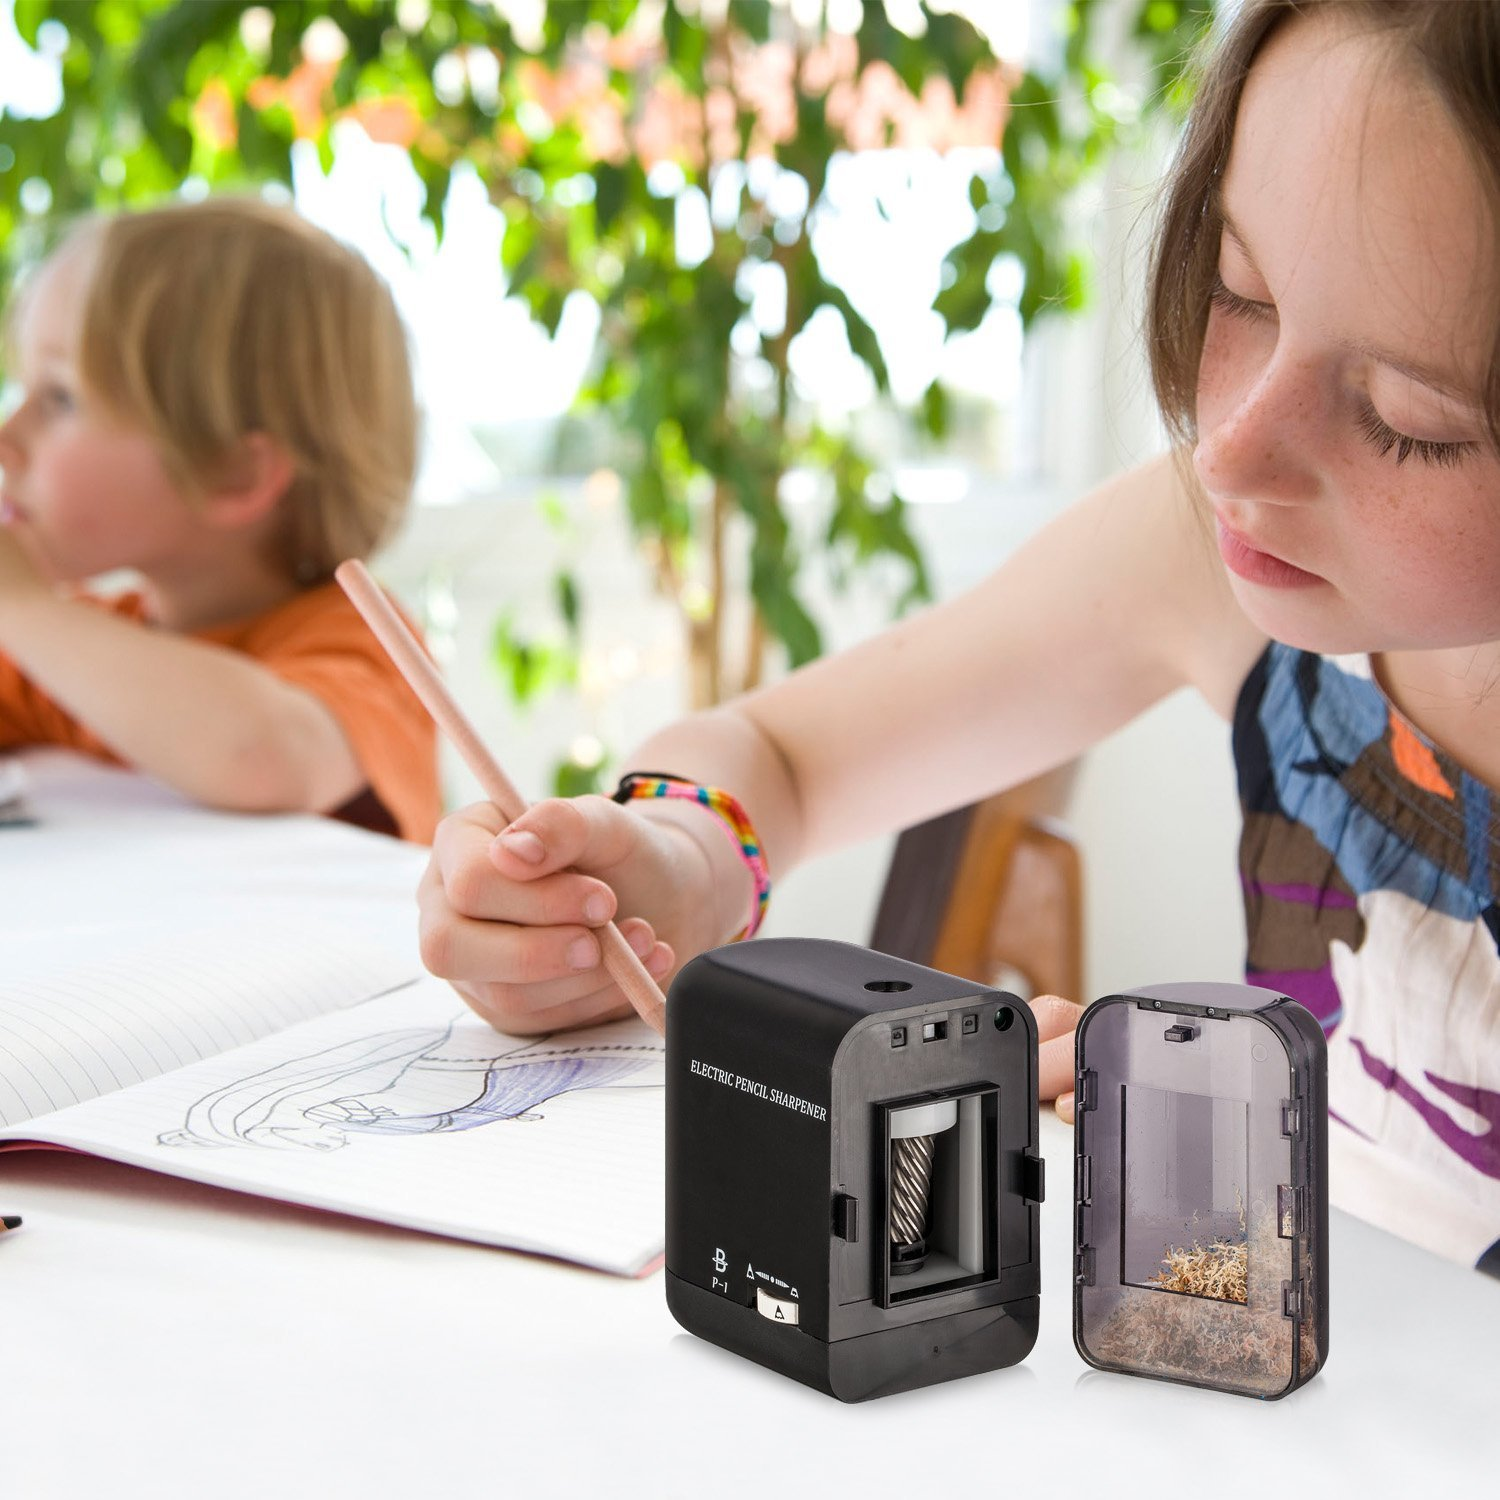 BOOCOSA Pencil Sharpener, BEST Heavy Duty Steel Blade, Electric Pencils Sharpener with Auto Stop for School Classroom Office Home – Precise Perfect Point Every time for Artists Kids Adults by BOOCOSA (Image #8)